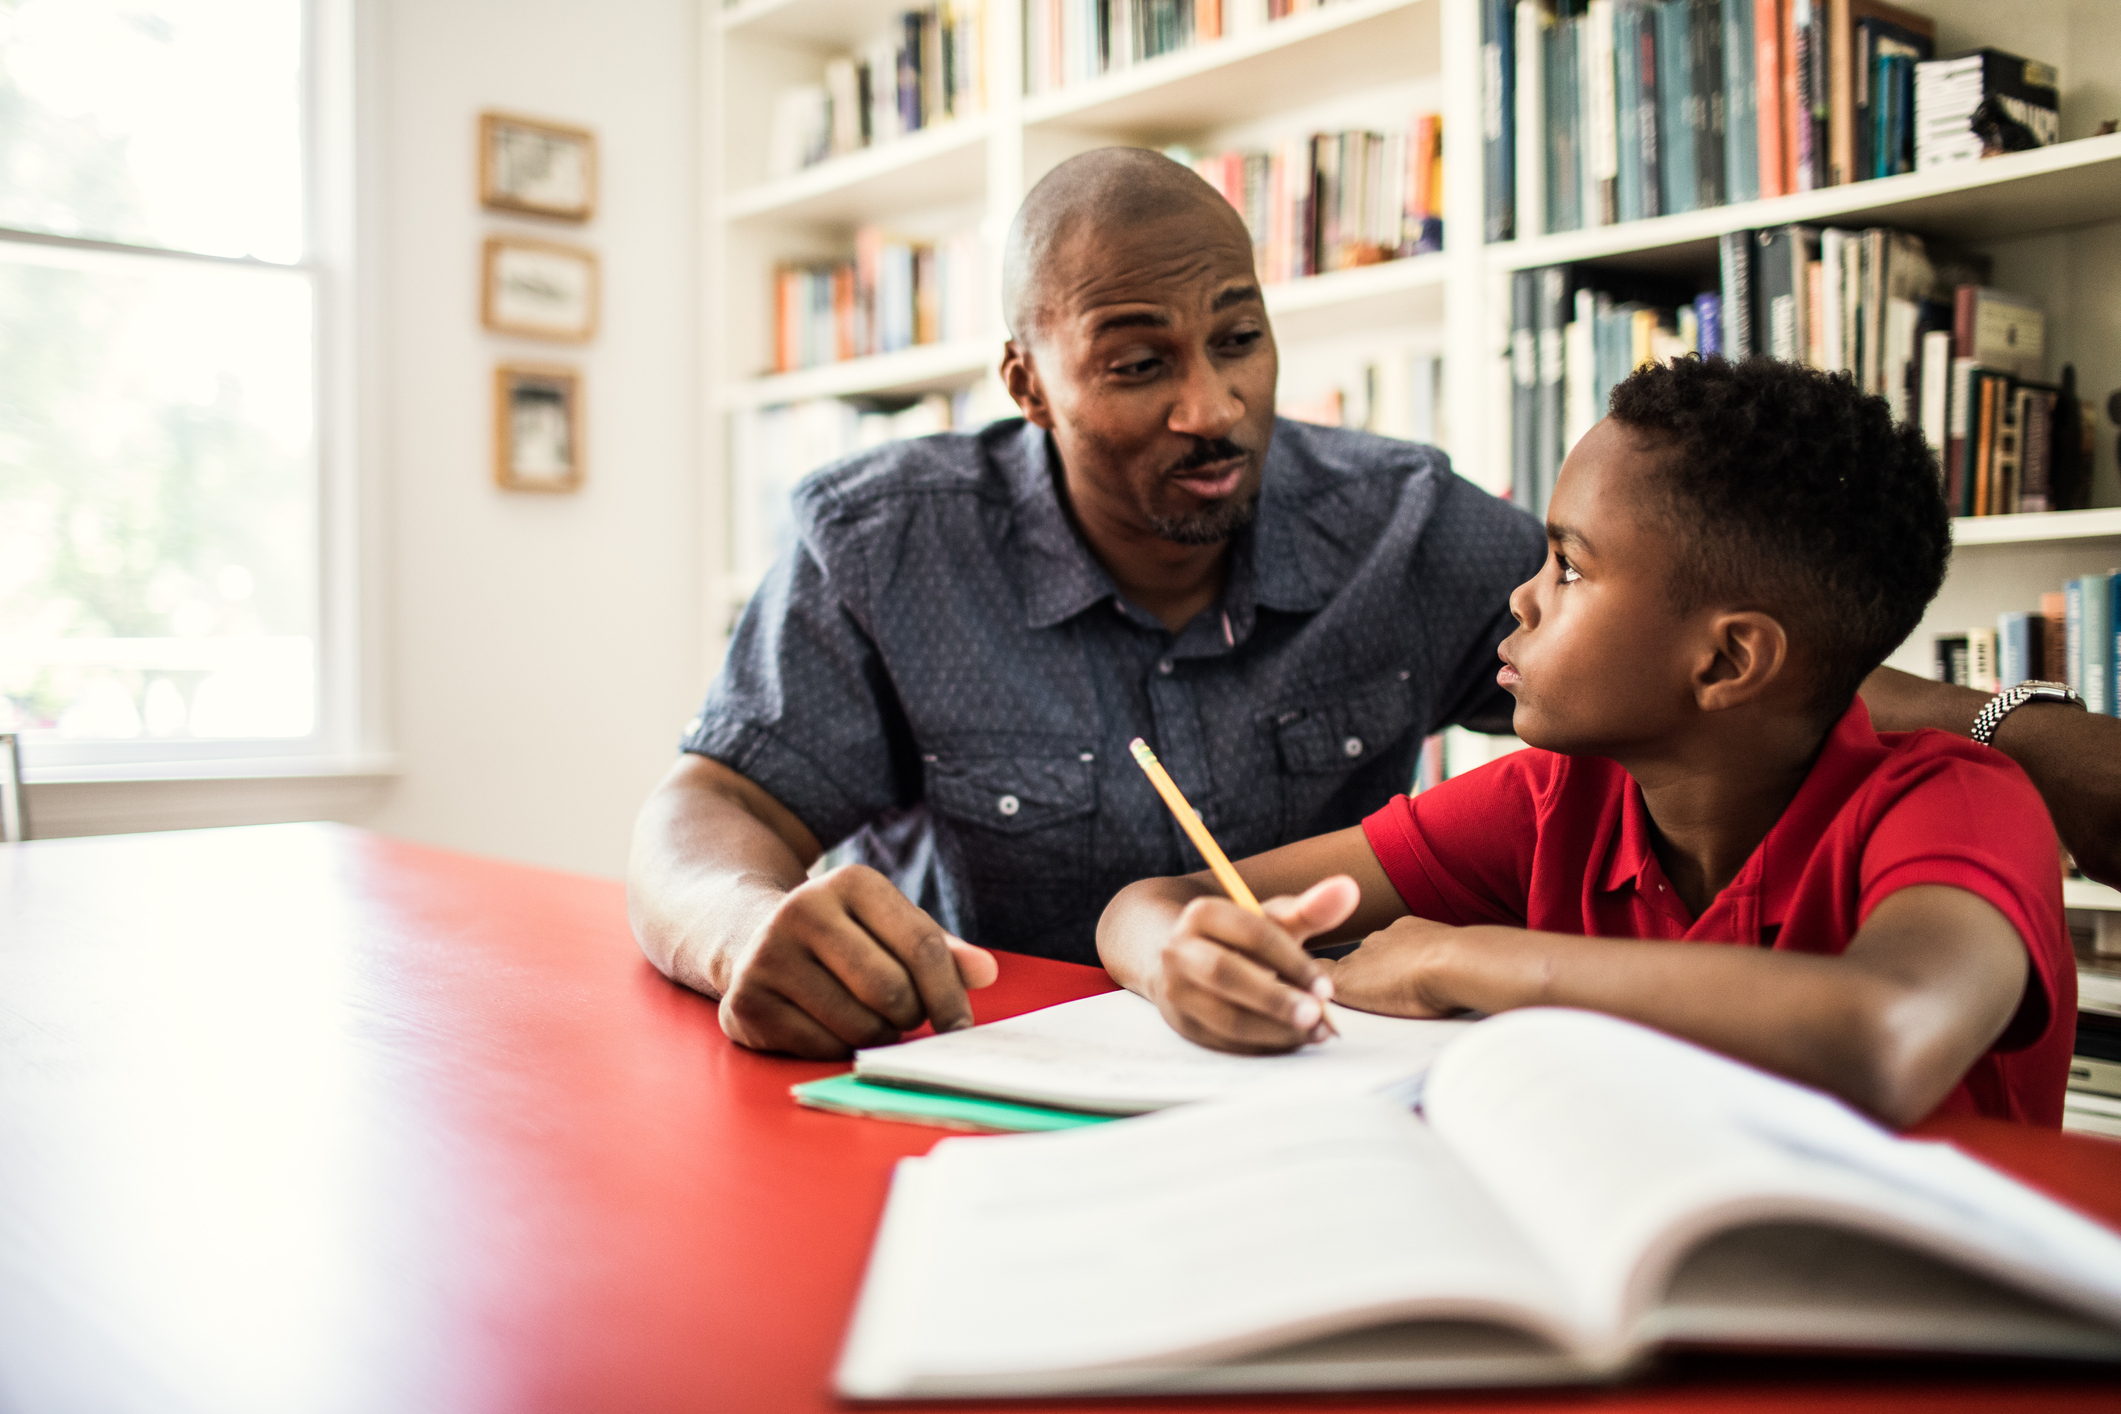 Stock image of father helping son with homework (Getty Images)